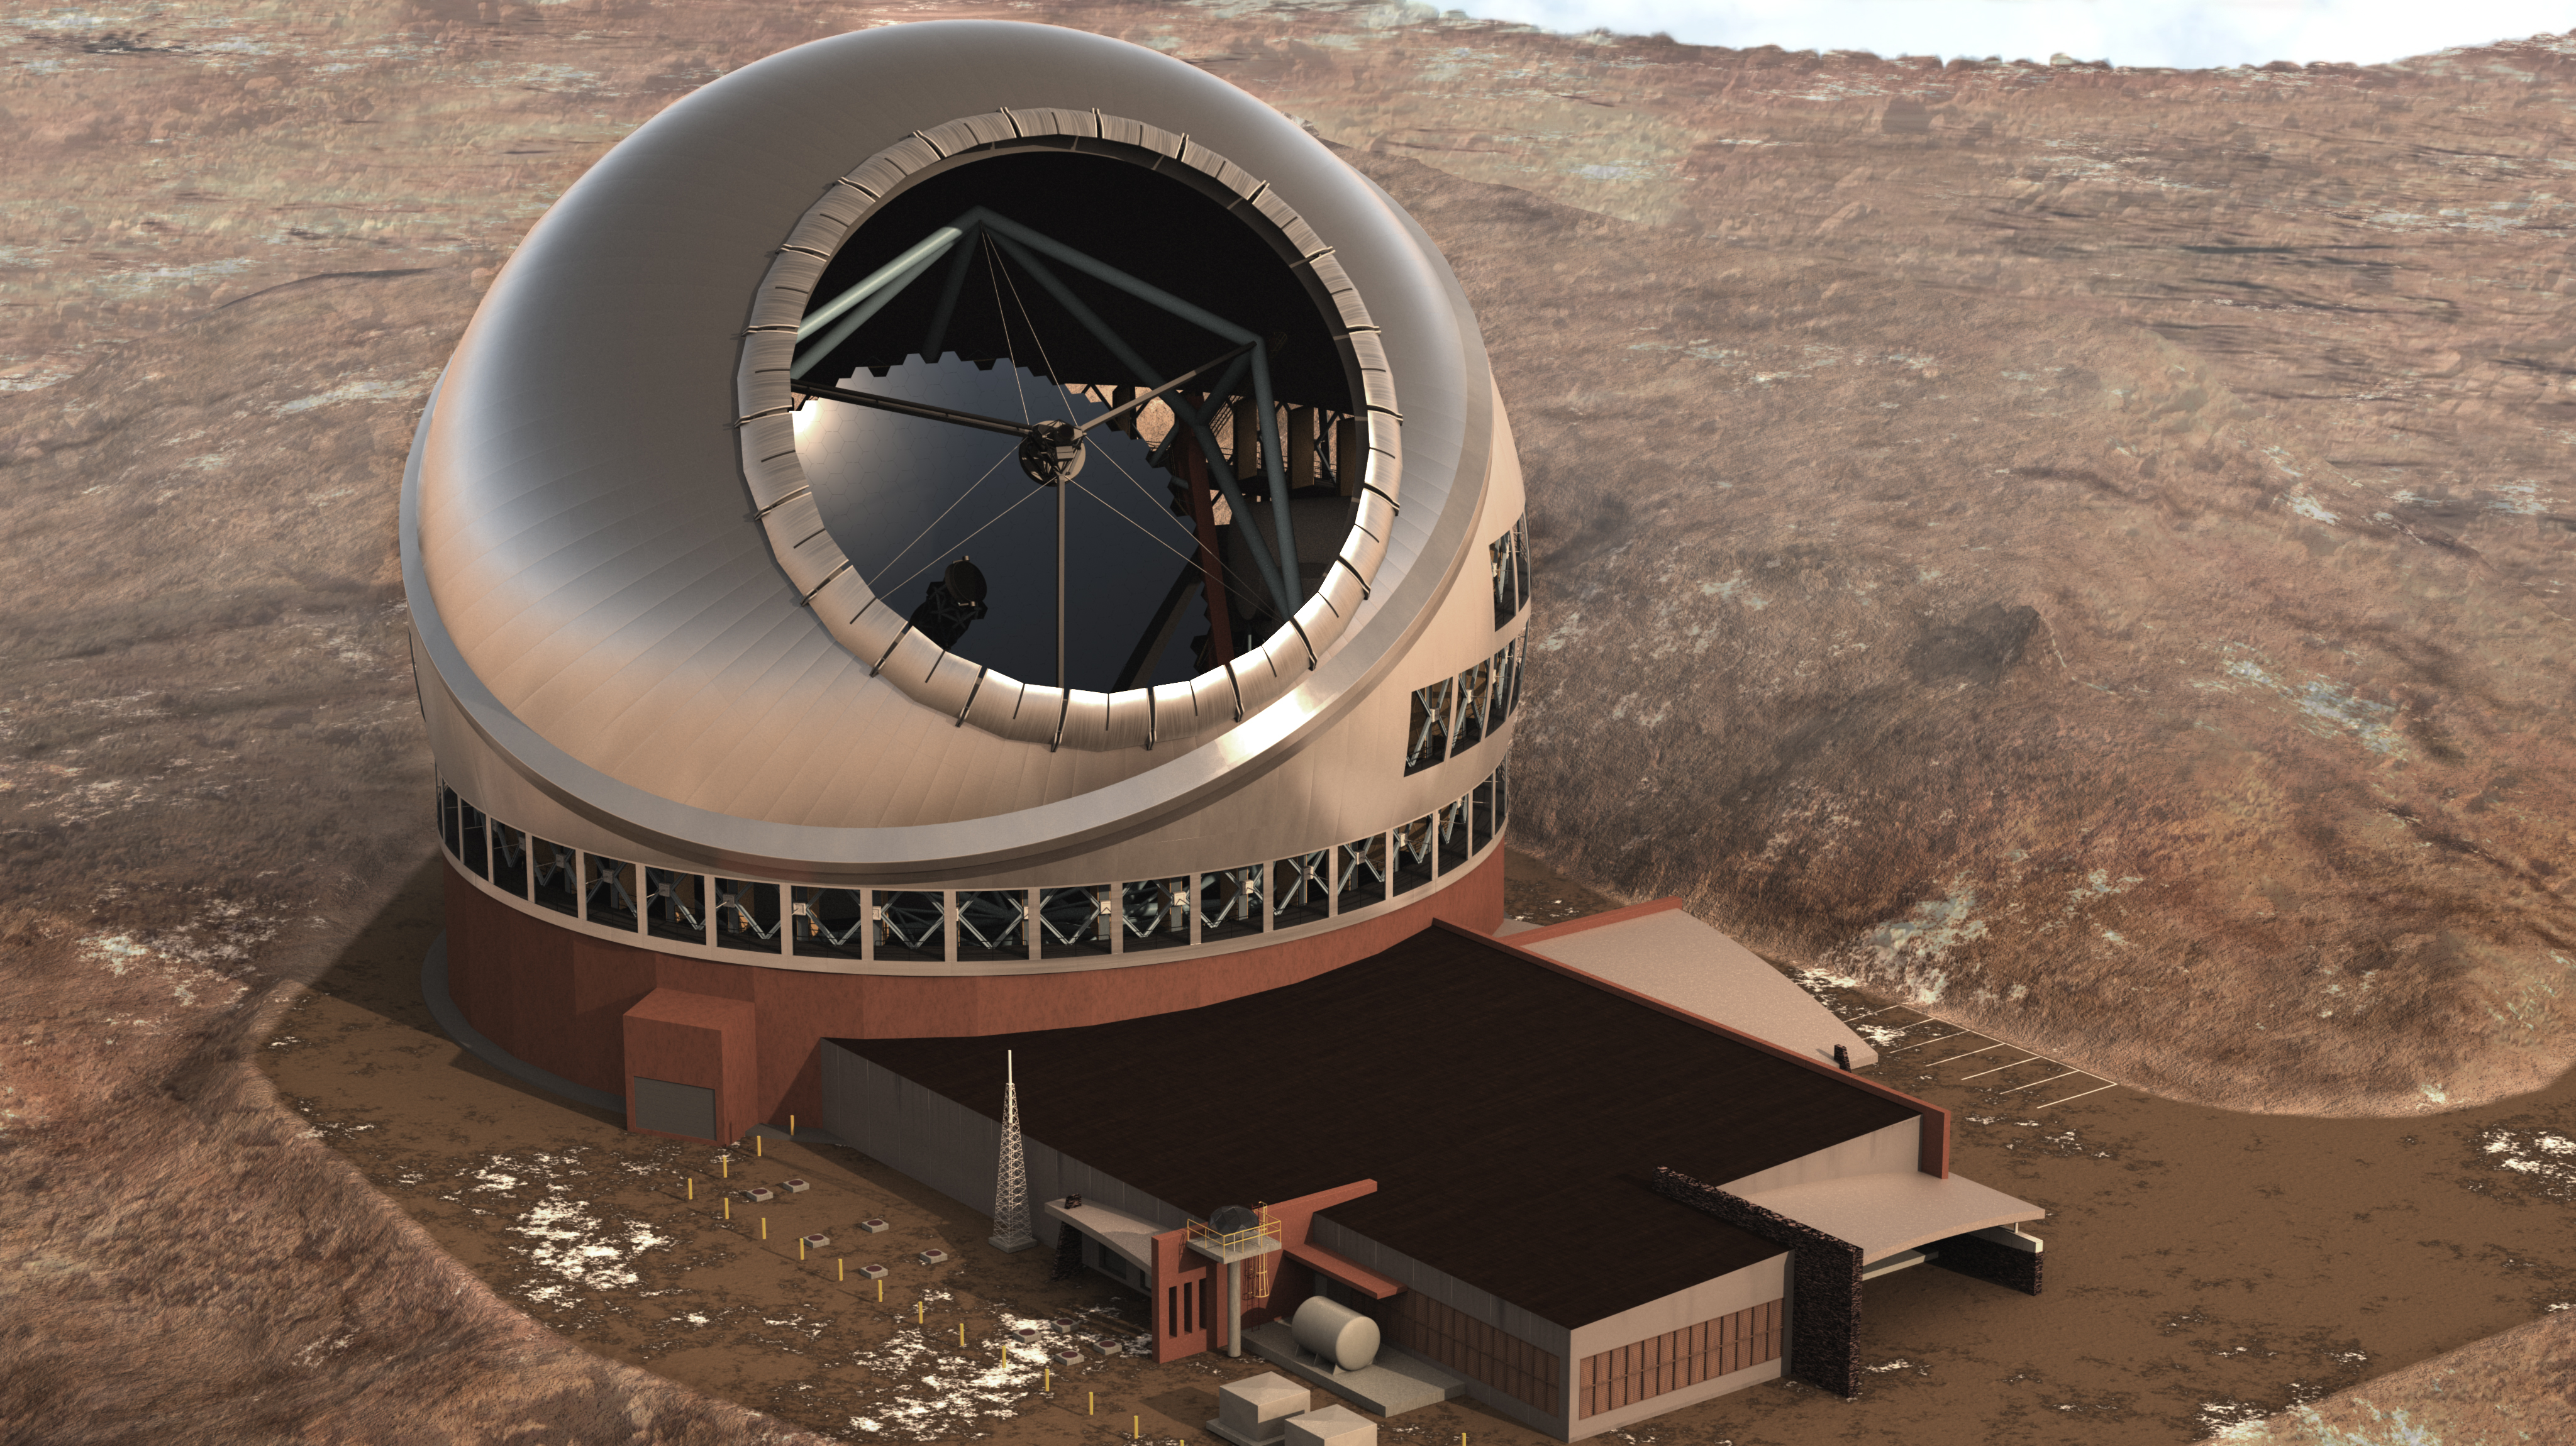 An artist's illustration of the proposed Thirty Meter Telescope on Mauna Kea.